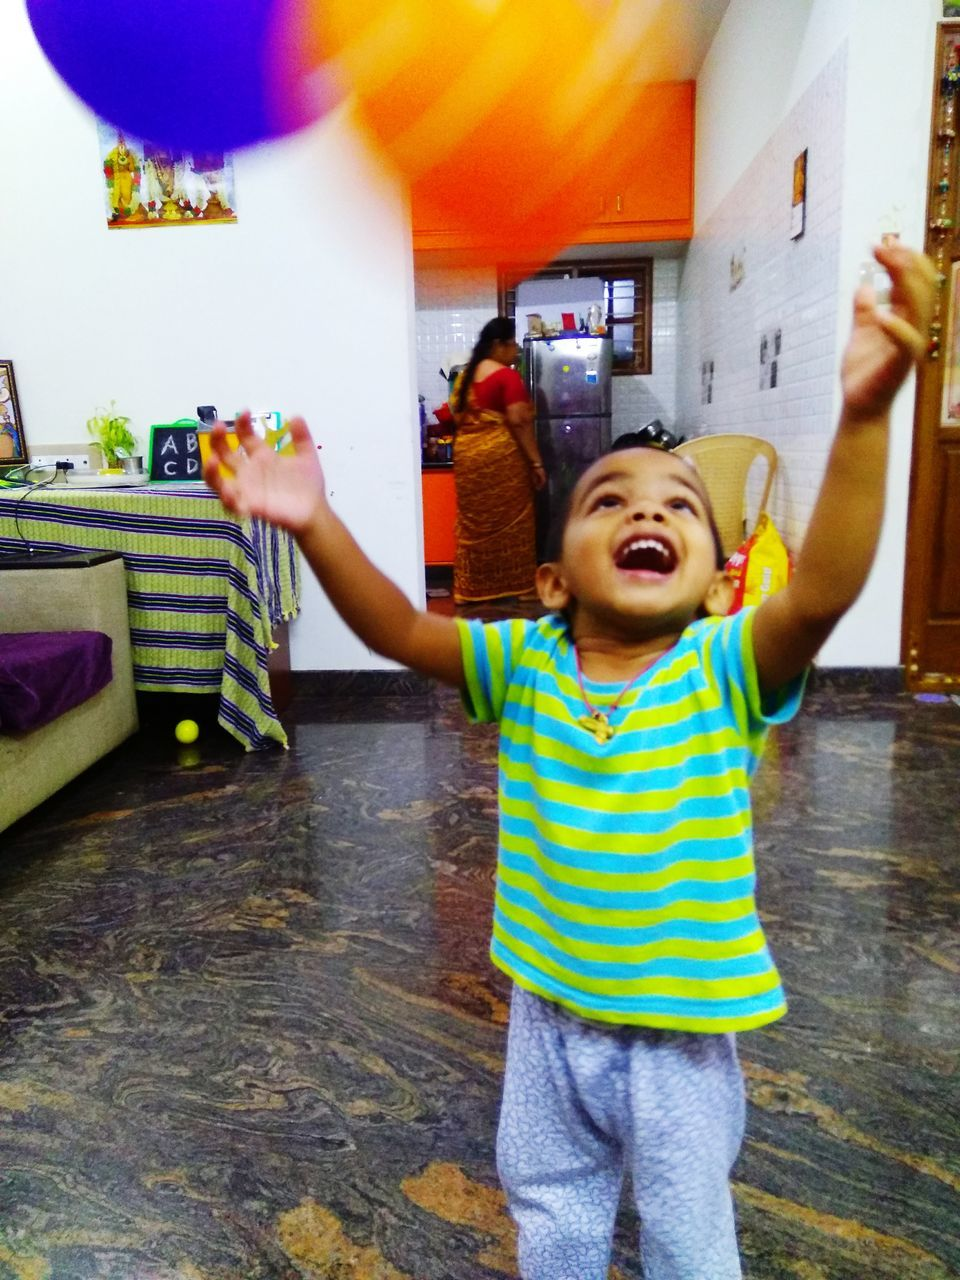 childhood, striped, casual clothing, real people, mouth open, boys, elementary age, happiness, standing, fun, enjoyment, playing, leisure activity, girls, indoors, home interior, two people, day, lifestyles, multi colored, smiling, people